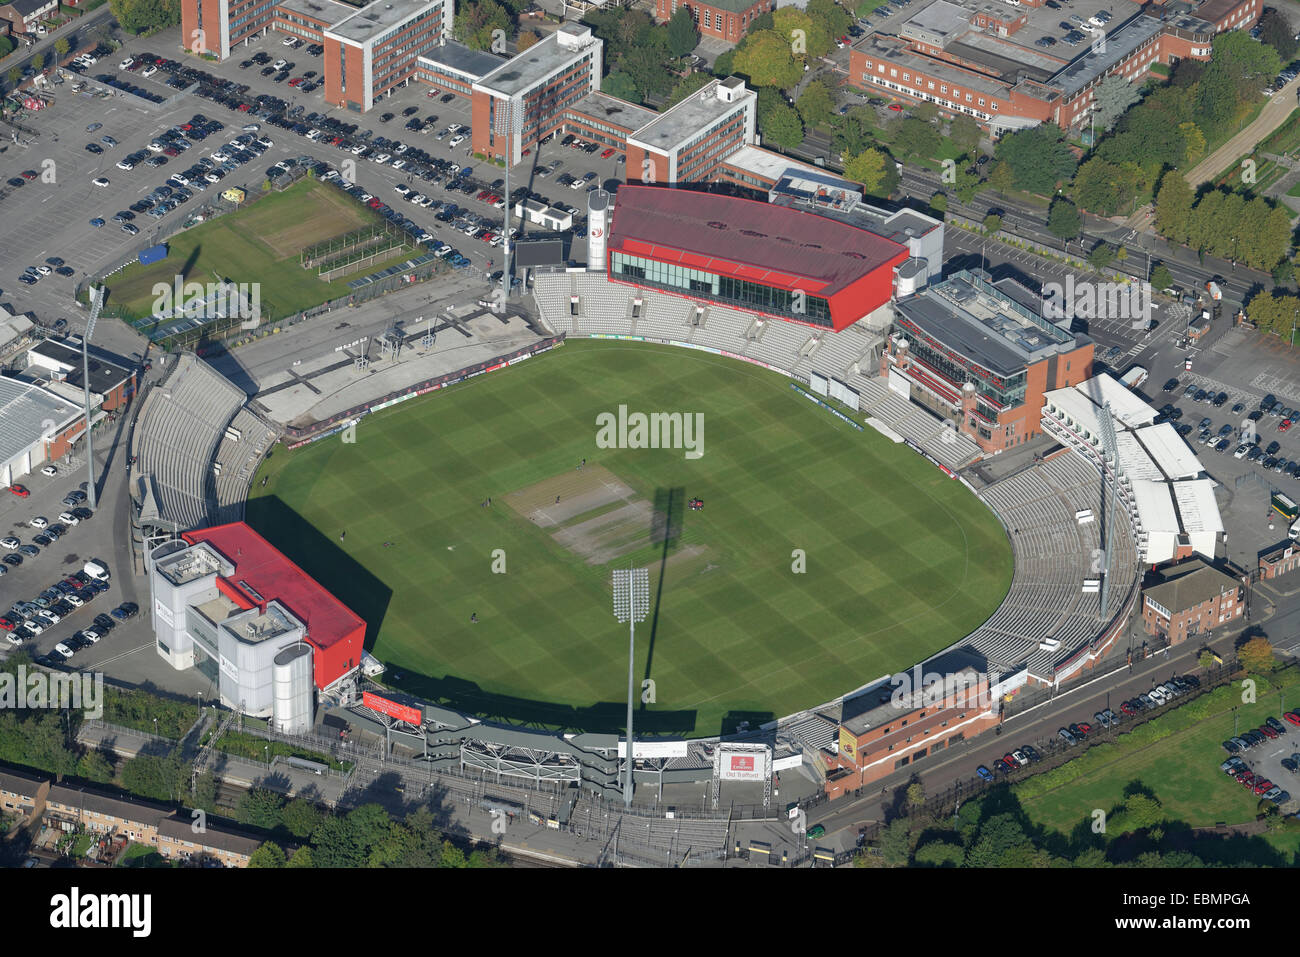 An aerial view of Old Trafford Cricket Ground Manchester. Home of Lancashire County Cricket Club - Stock Image